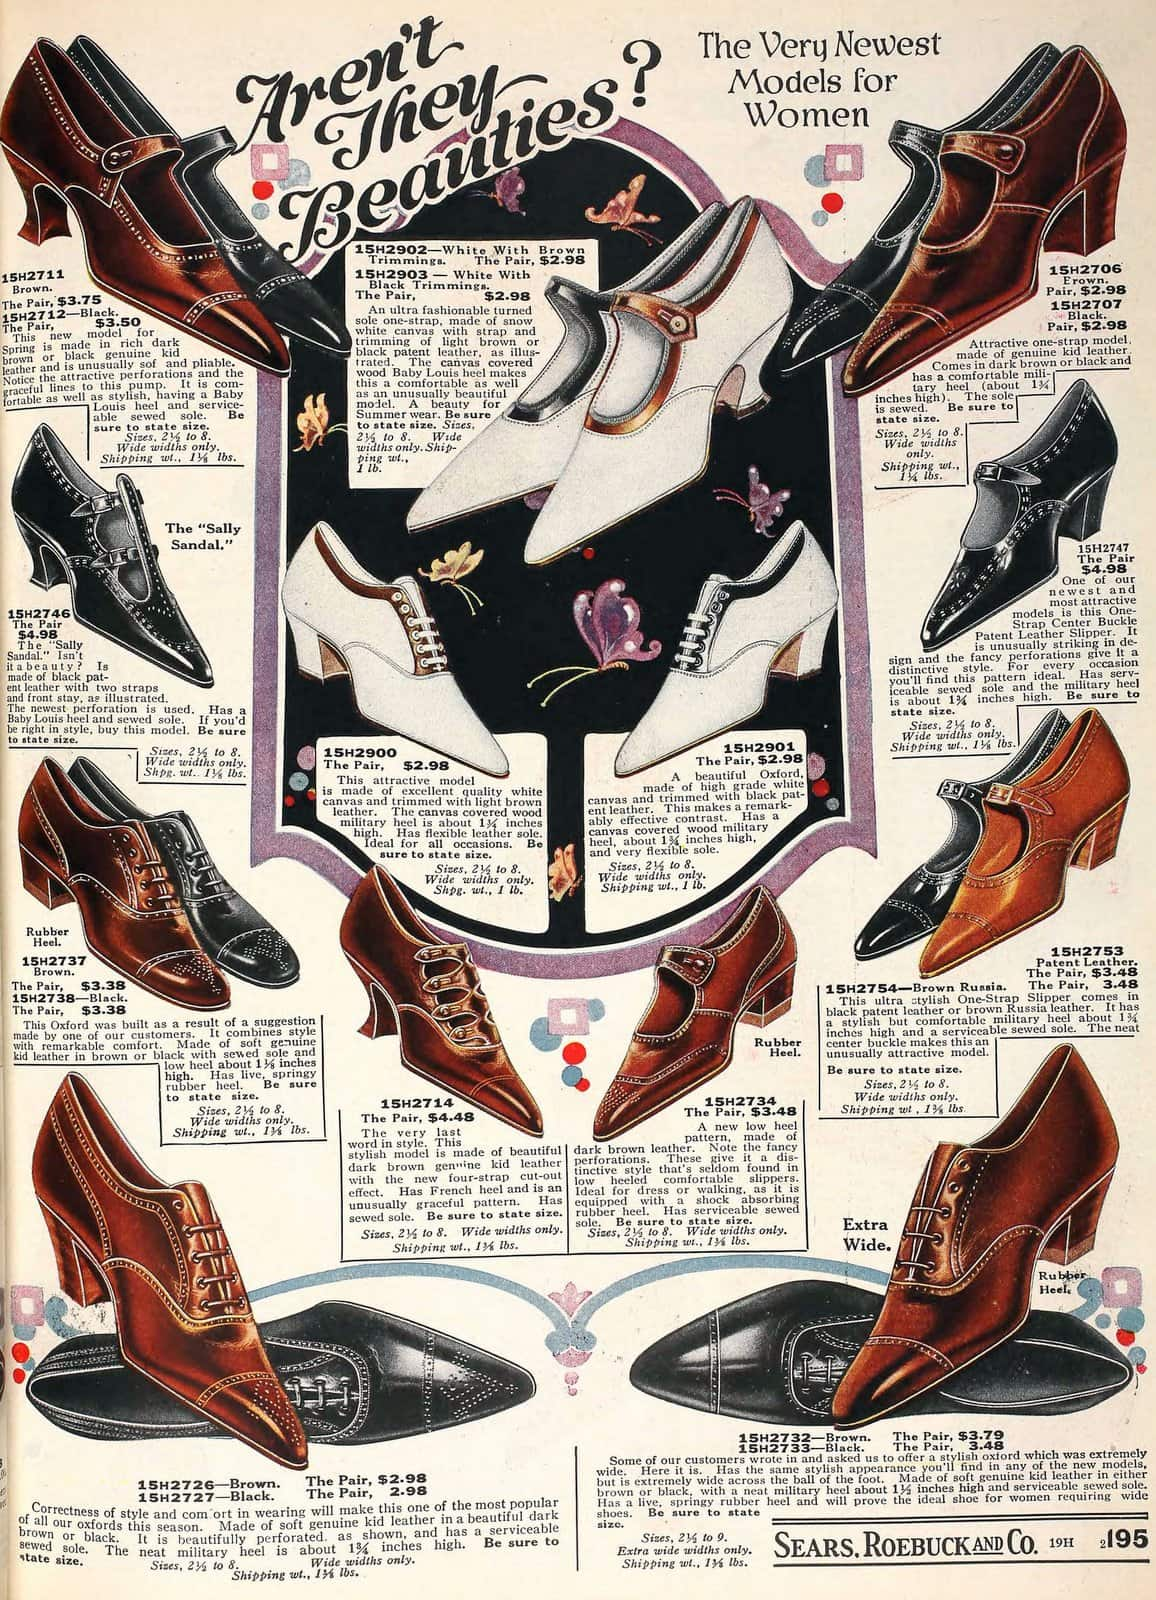 Vintage 1920s shoes for women from 1923